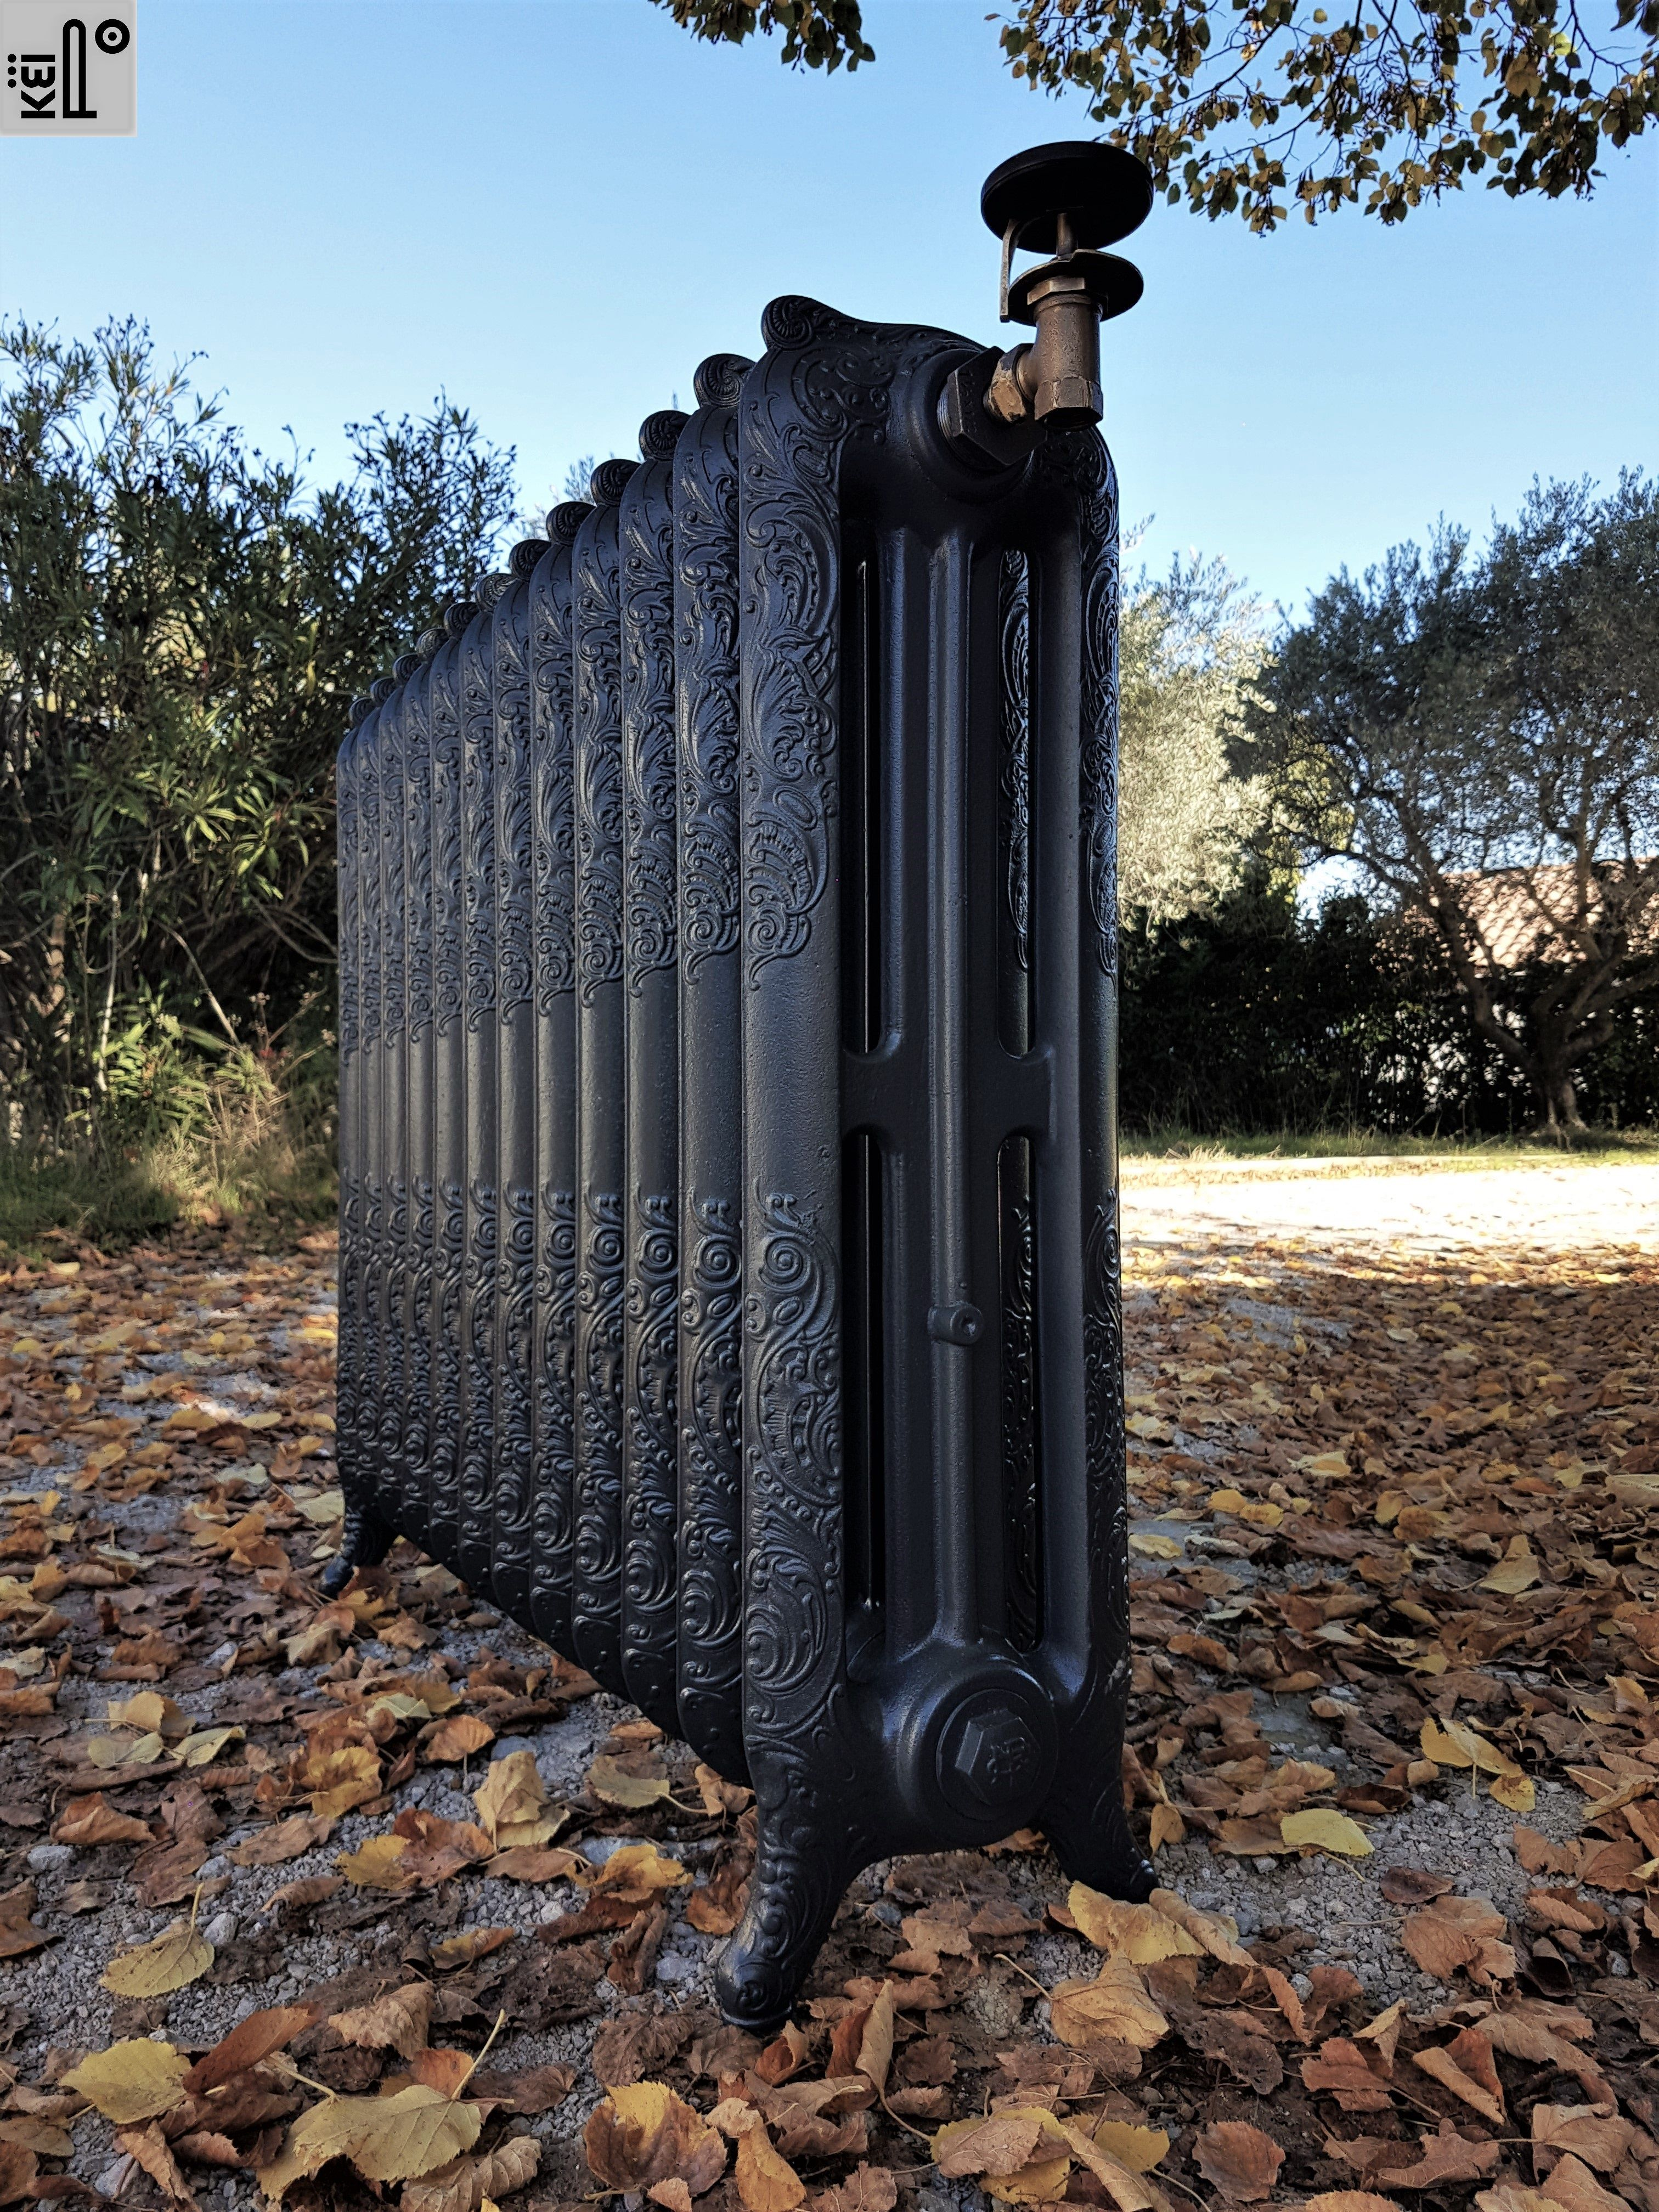 radiateur ancien rococo fleuri en 3 colonnes sous feuilles d automne by k ipo cast iron. Black Bedroom Furniture Sets. Home Design Ideas